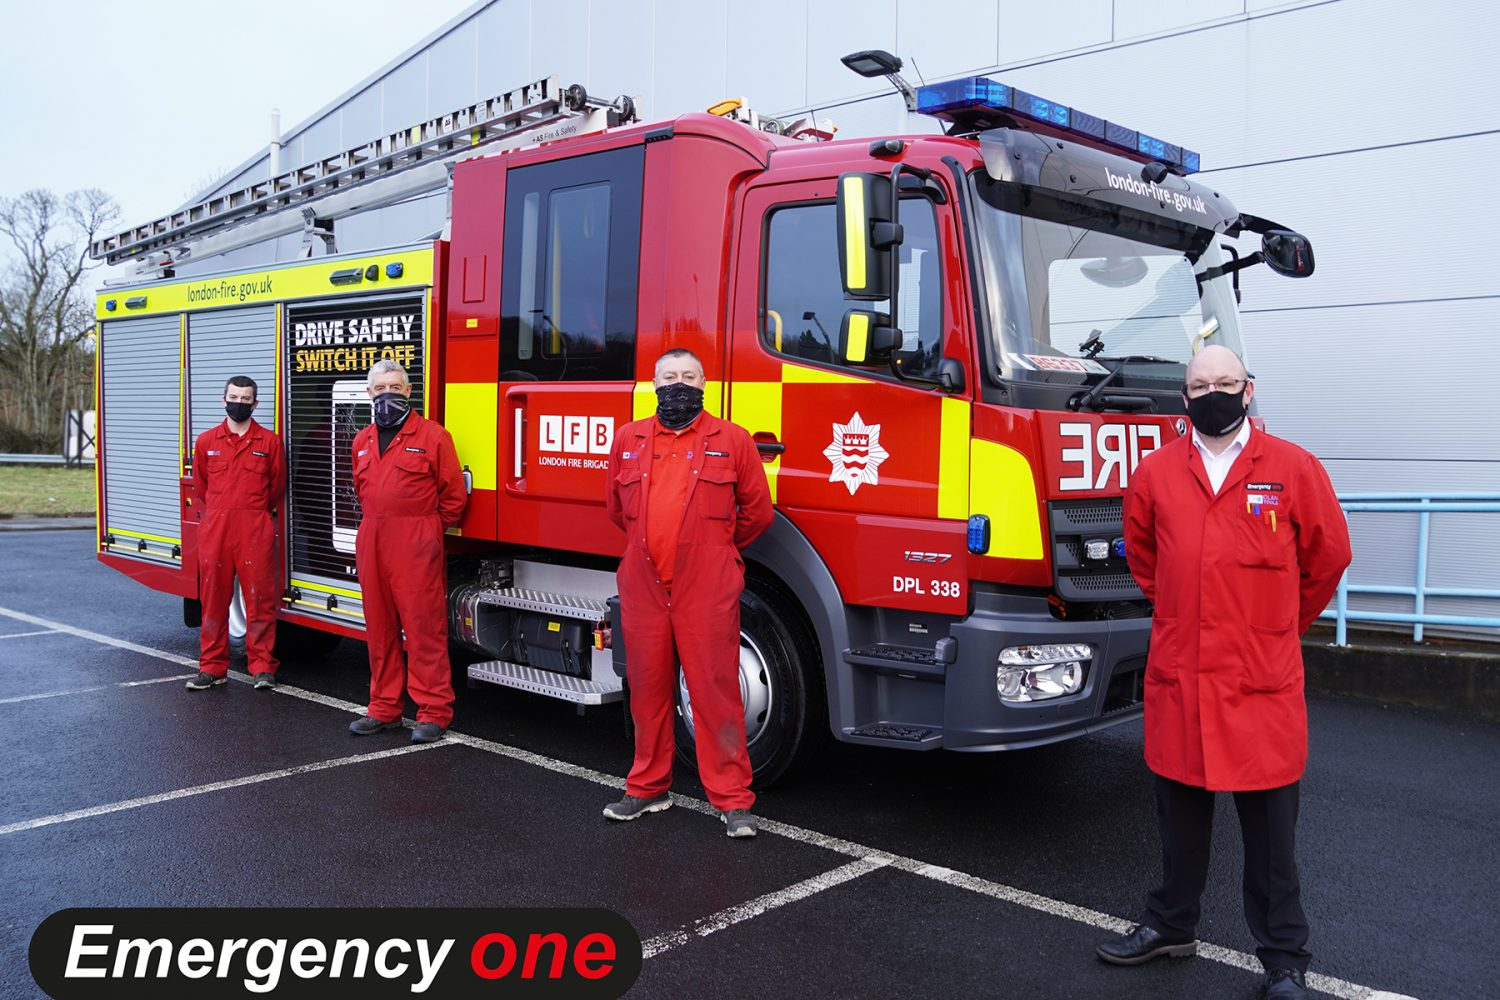 emergency one, fire engine, manufacturers, UK, apprenticeships, business, community